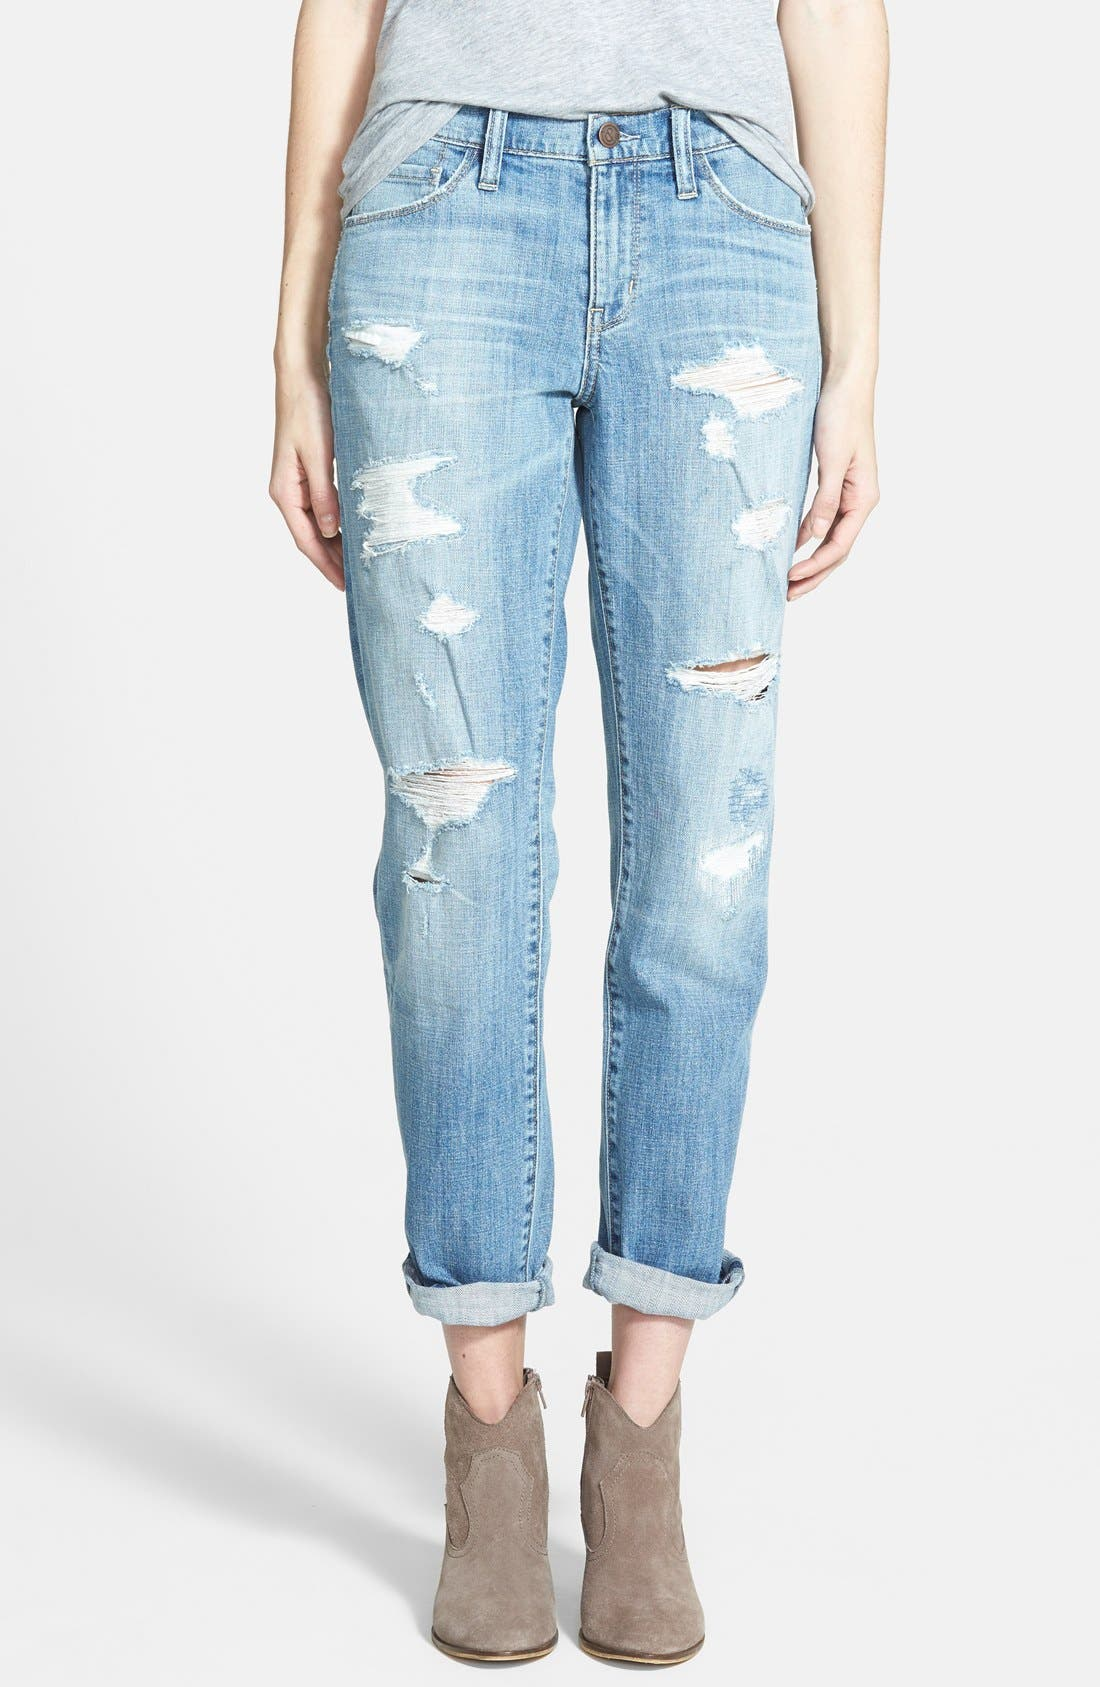 Treasure&Bond Destructed Boyfriend Jeans,                         Main,                         color, 400